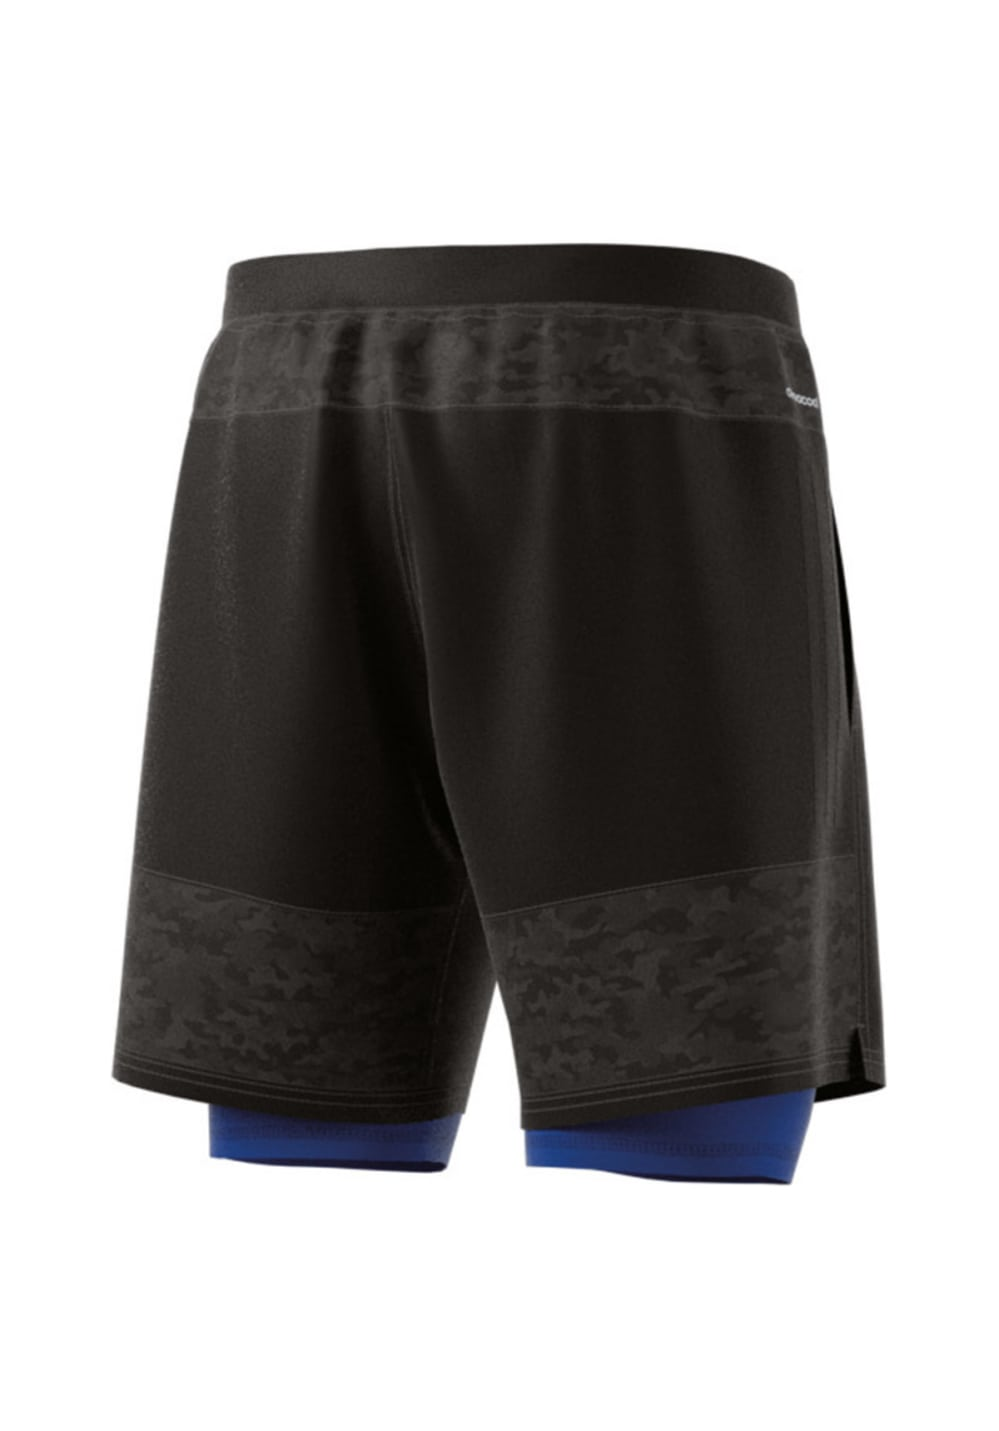 purchase cheap e3712 a4ef9 adidas Speed Short Climacool 2In1 - Running trousers for Men - Black